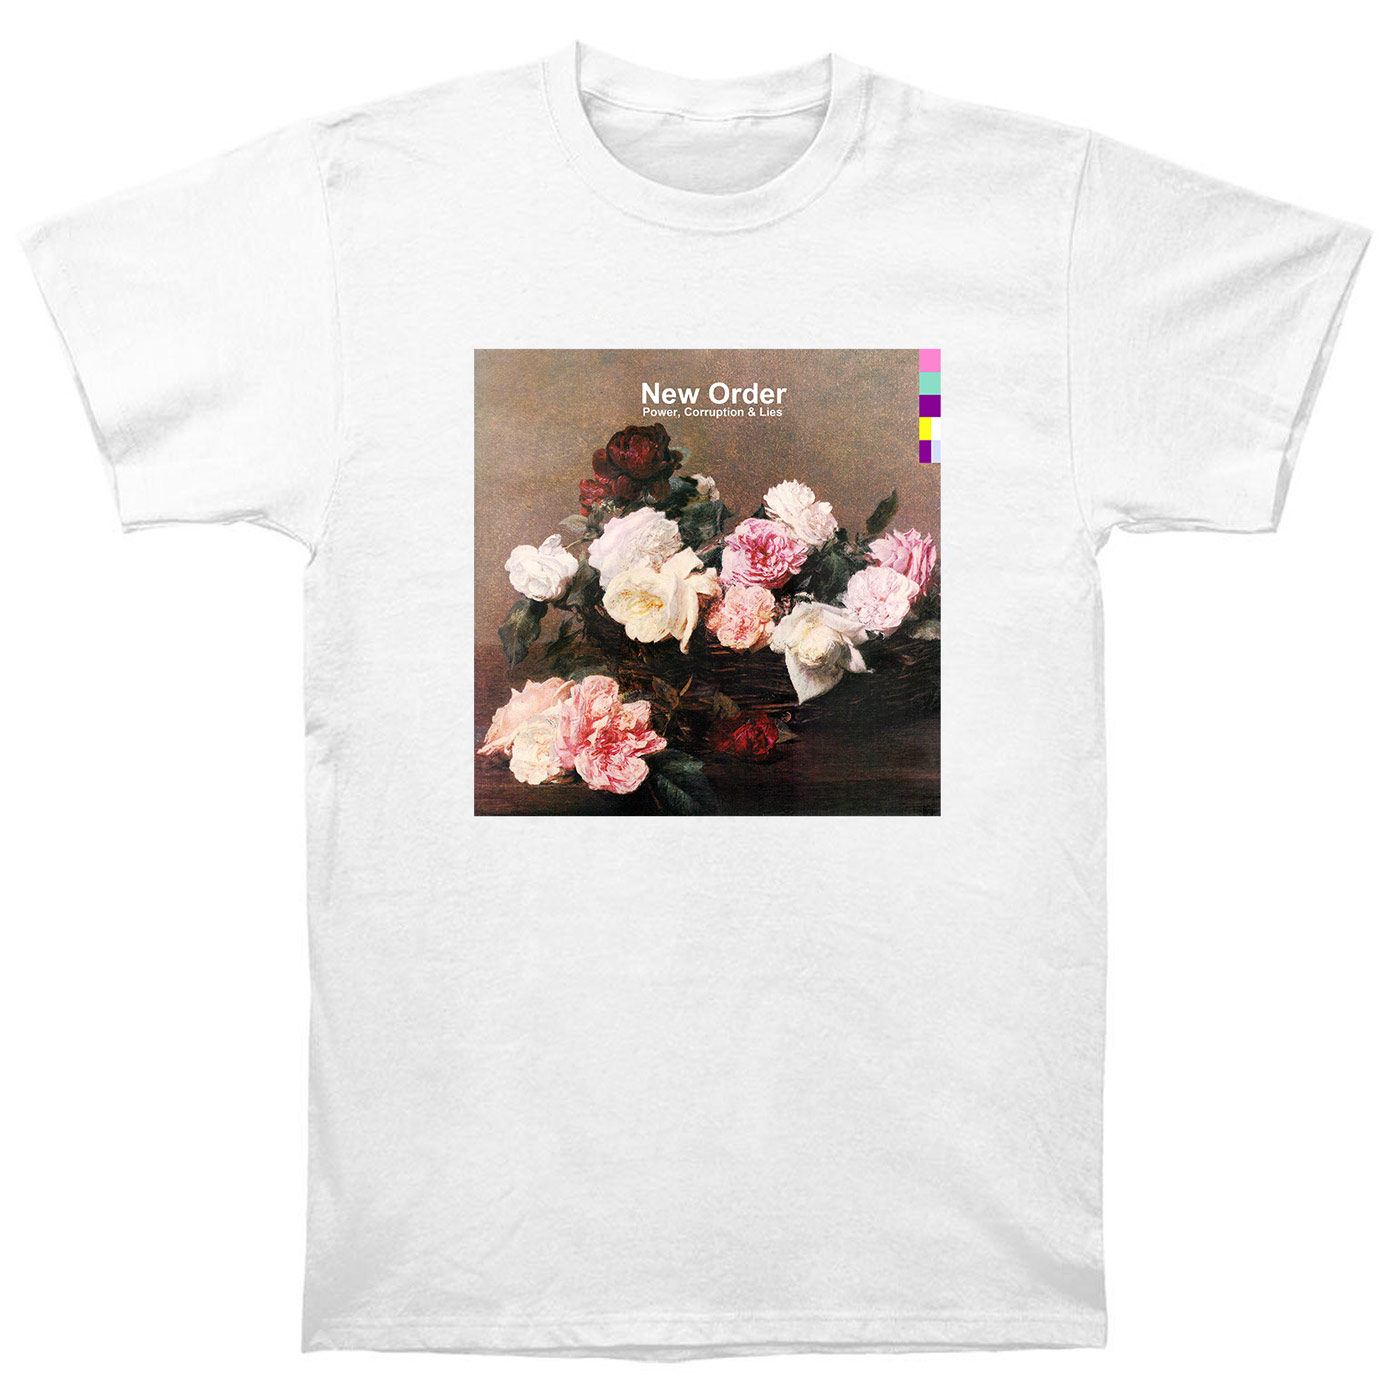 Compare Prices on Lp Shirt- Online Shopping/Buy Low Price Lp Shirt ...